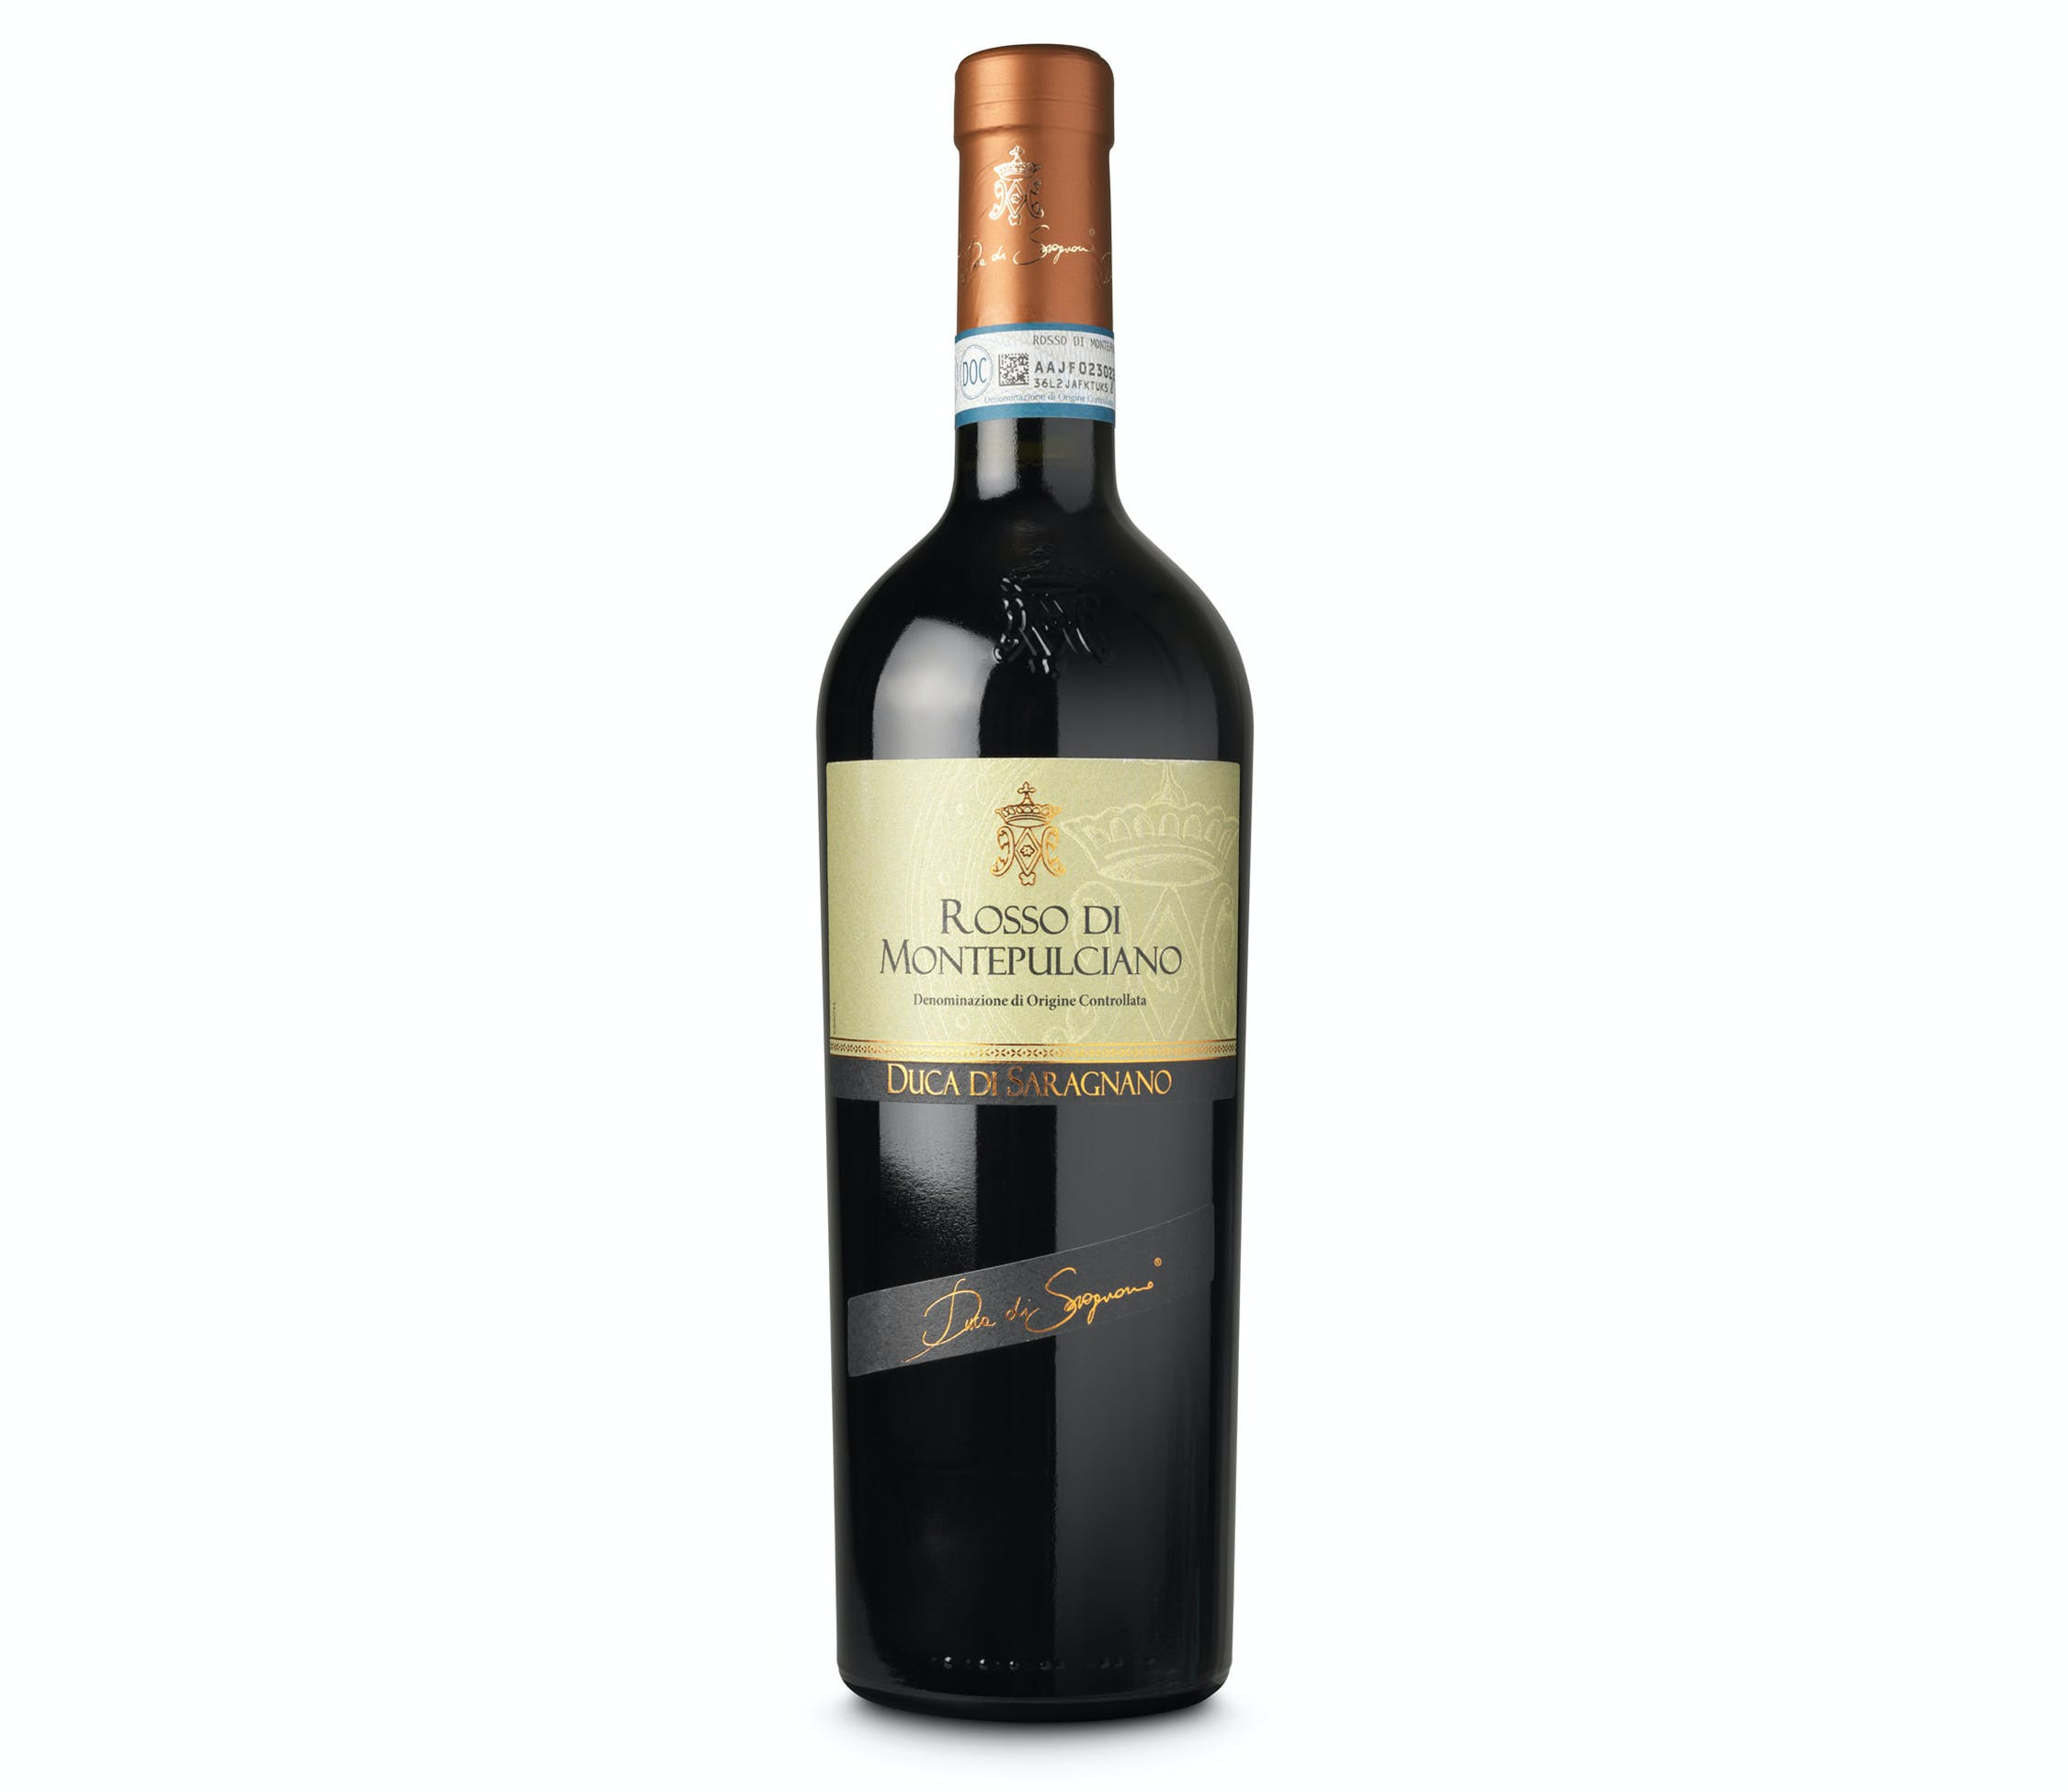 Bargain Rosso di Montepulciano, Barbanera Stockists